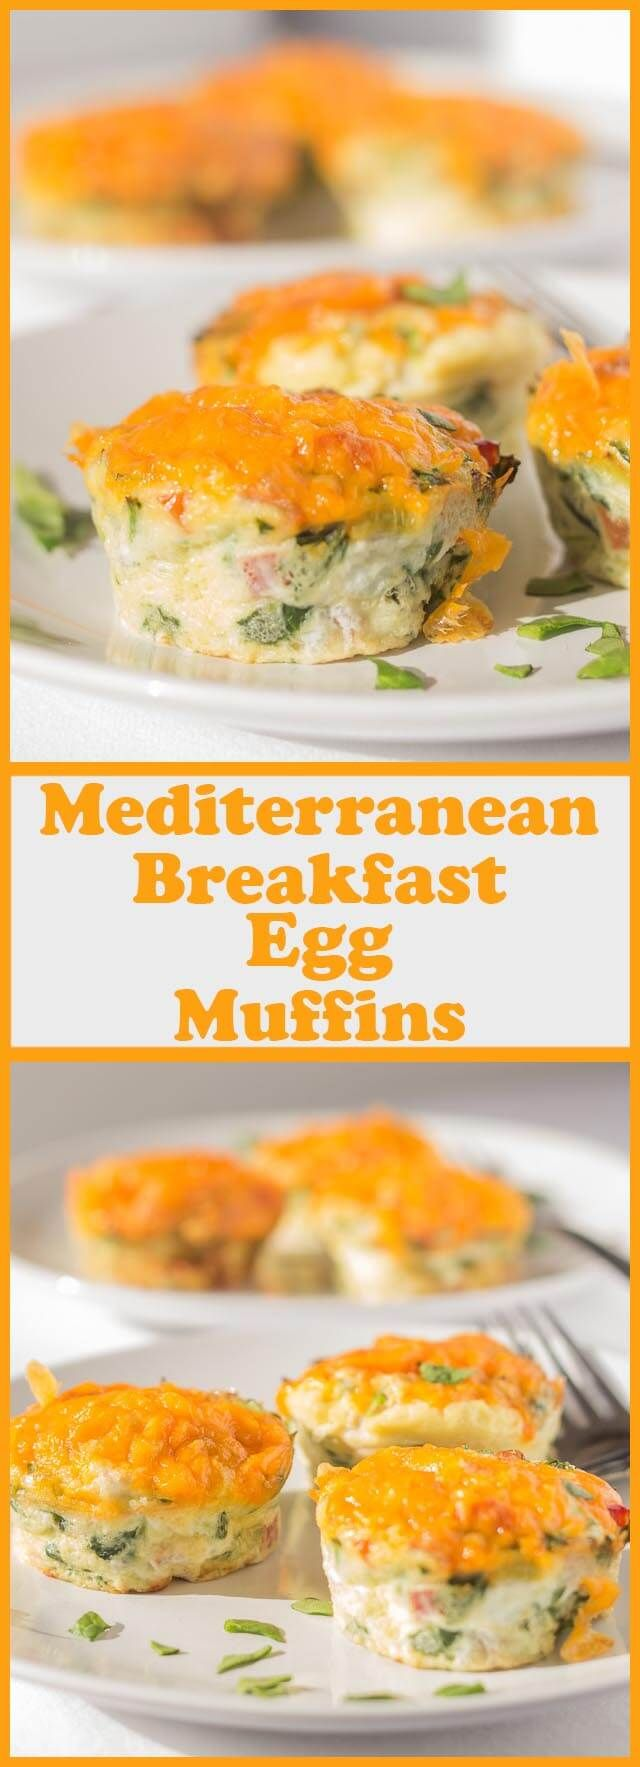 Mediterranean breakfast egg muffins are a delicious and healthy way to start your weekend. This simple, versatile recipe is low carb, packed with protein and low in calories too. This quick healthy meal will allow you to get on with enjoying your weekend, perfectly full! via @neilhealthymeal